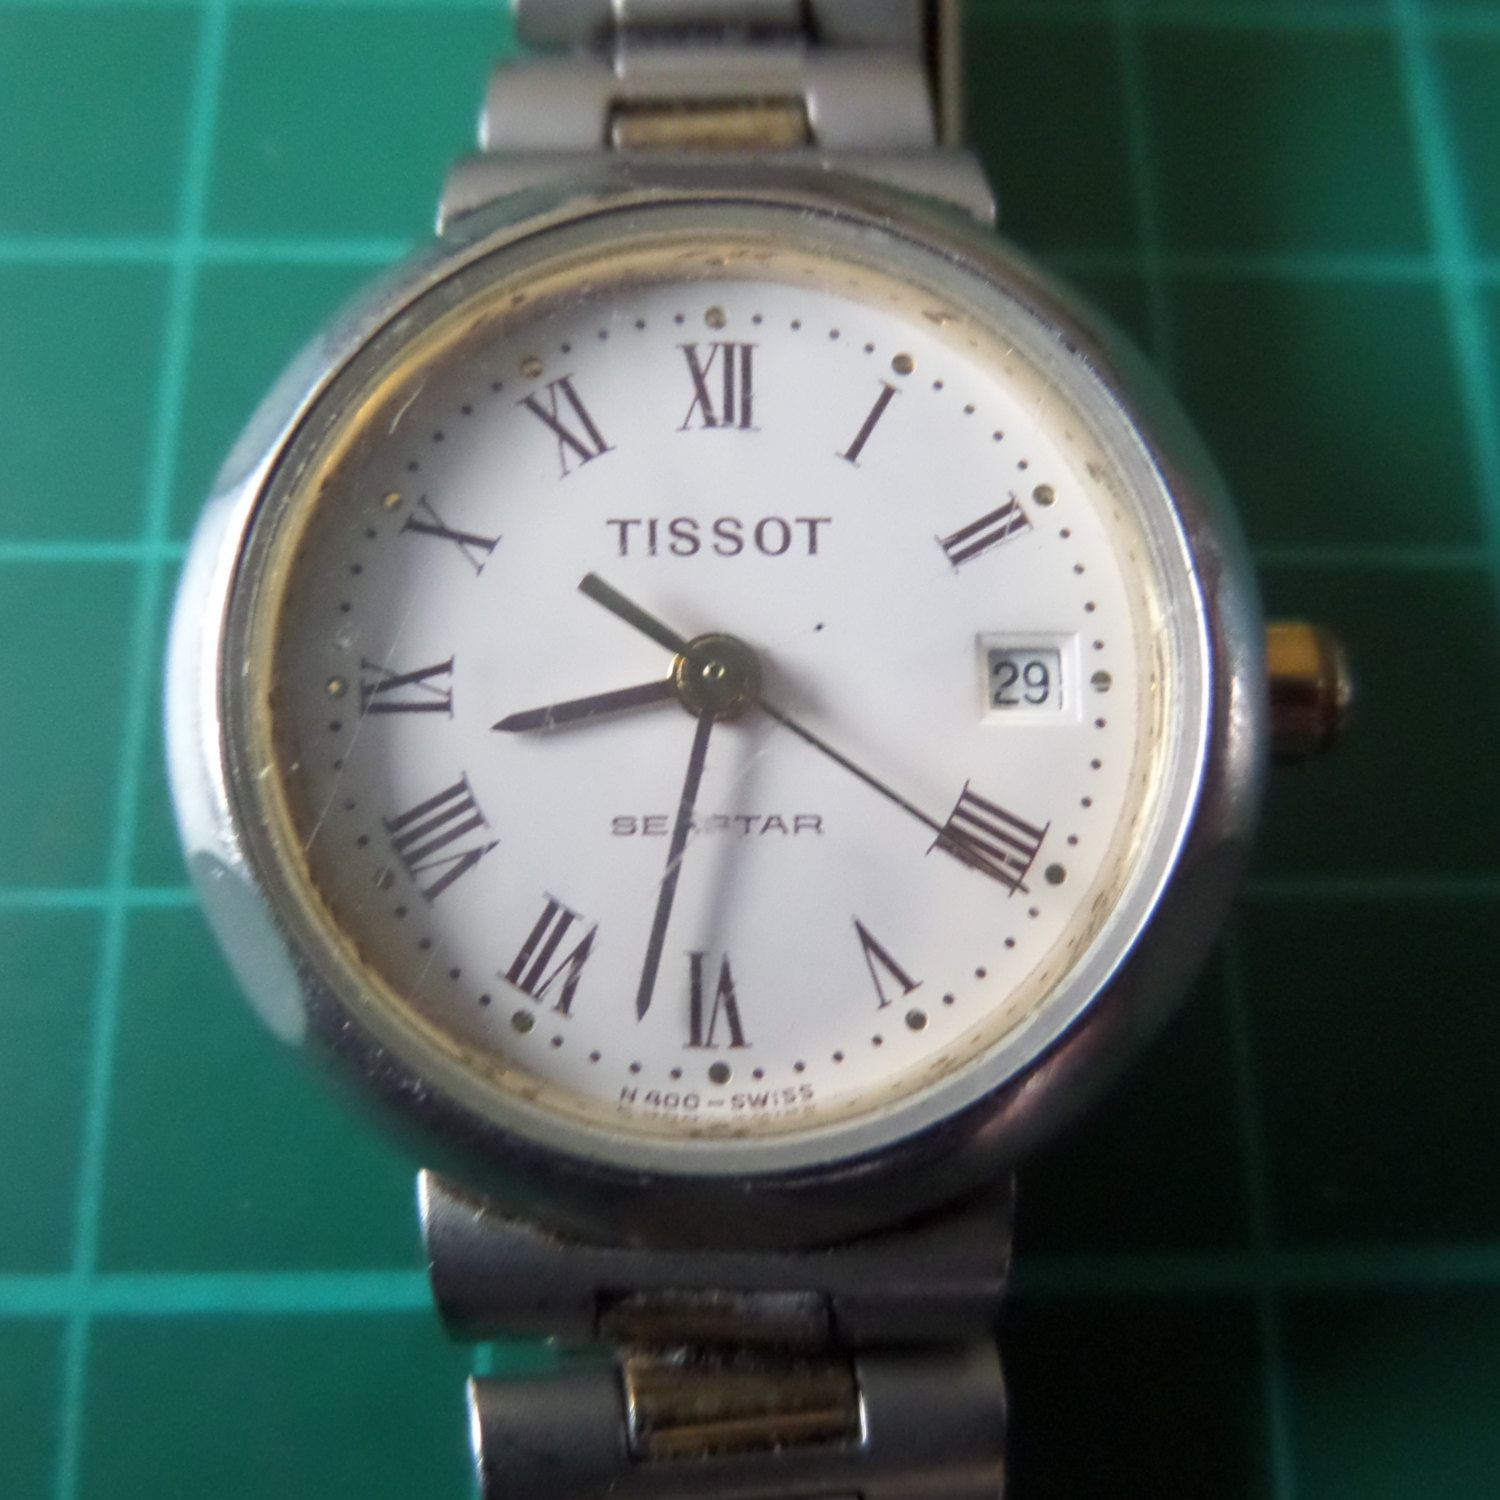 Tissot sea star quartz guaranteed genuine swiss made ladies wrist watch untouched stainless for Celebrity tissot watches